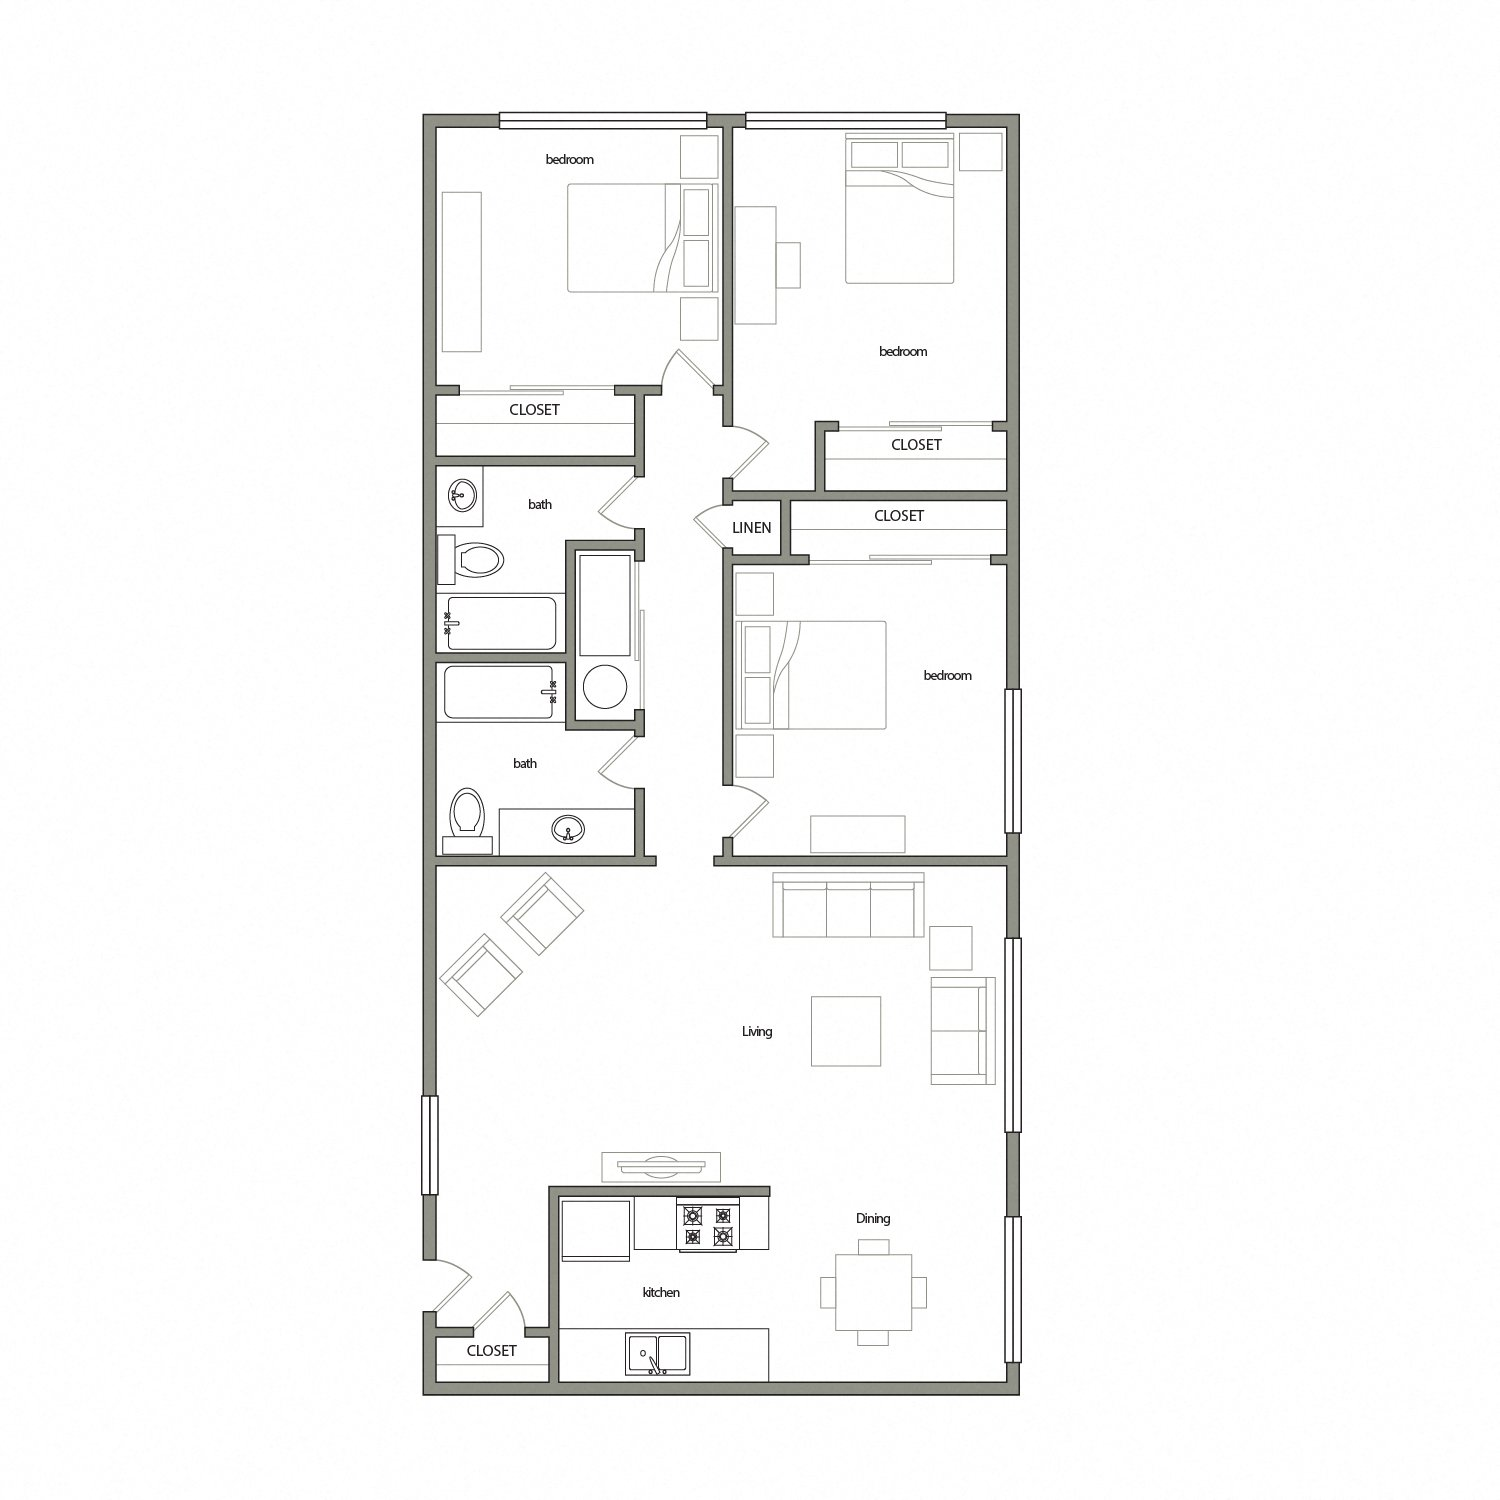 Navarre floor plan diagram. Three bedrooms, two bathrooms, and an open kitchen dining and living area.